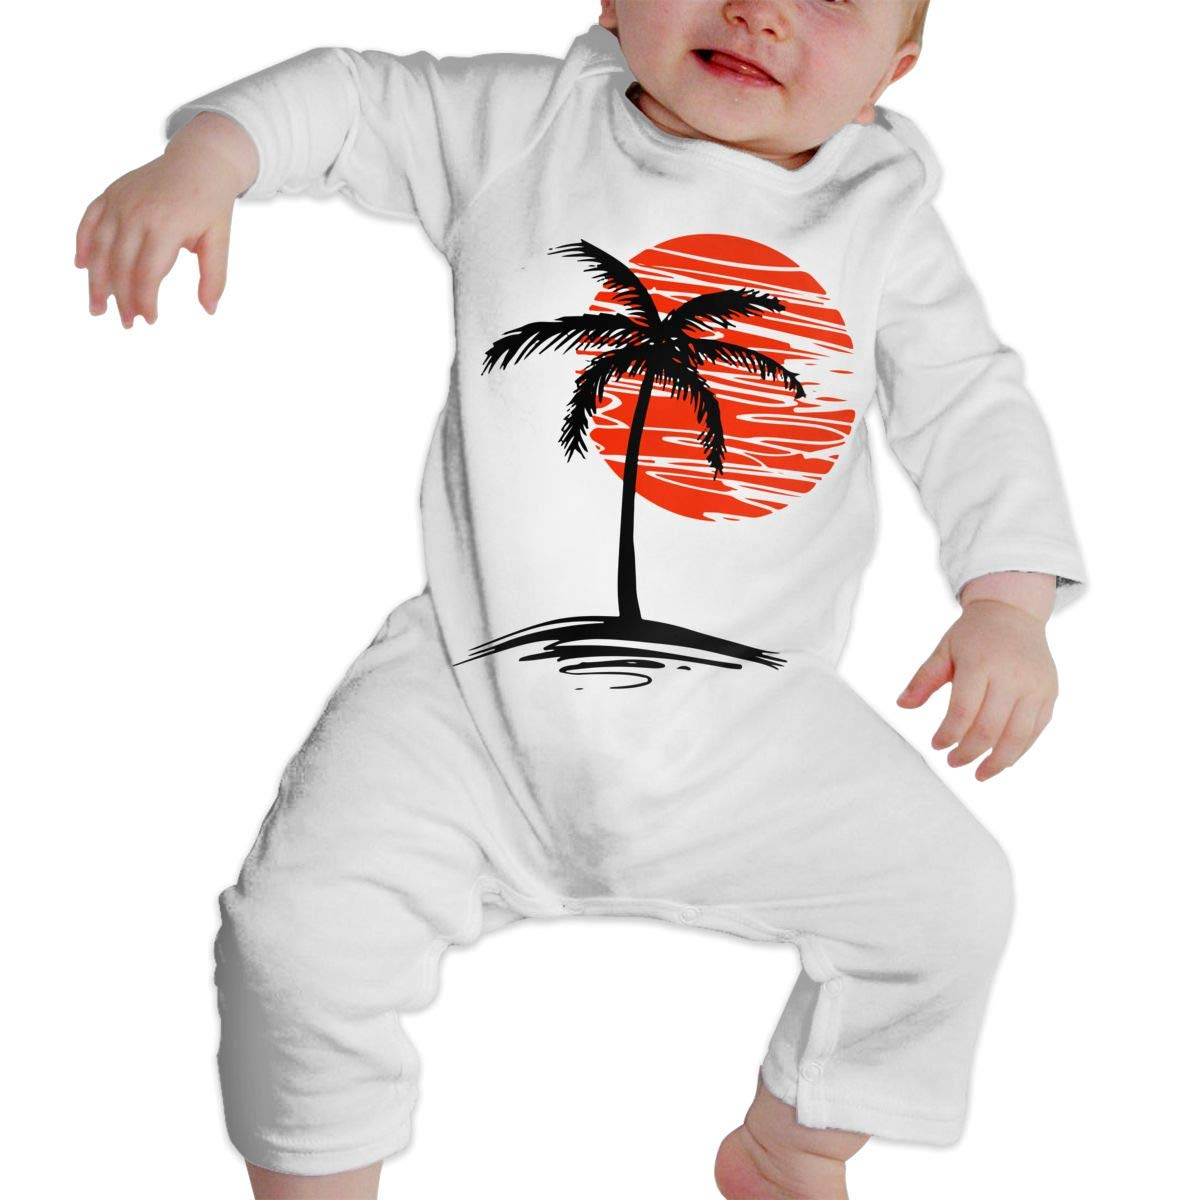 A1BY-5US Newborn Baby Boys Girls Bodysuits Palm Tree Cotton Long Sleeve One-Piece Coverall